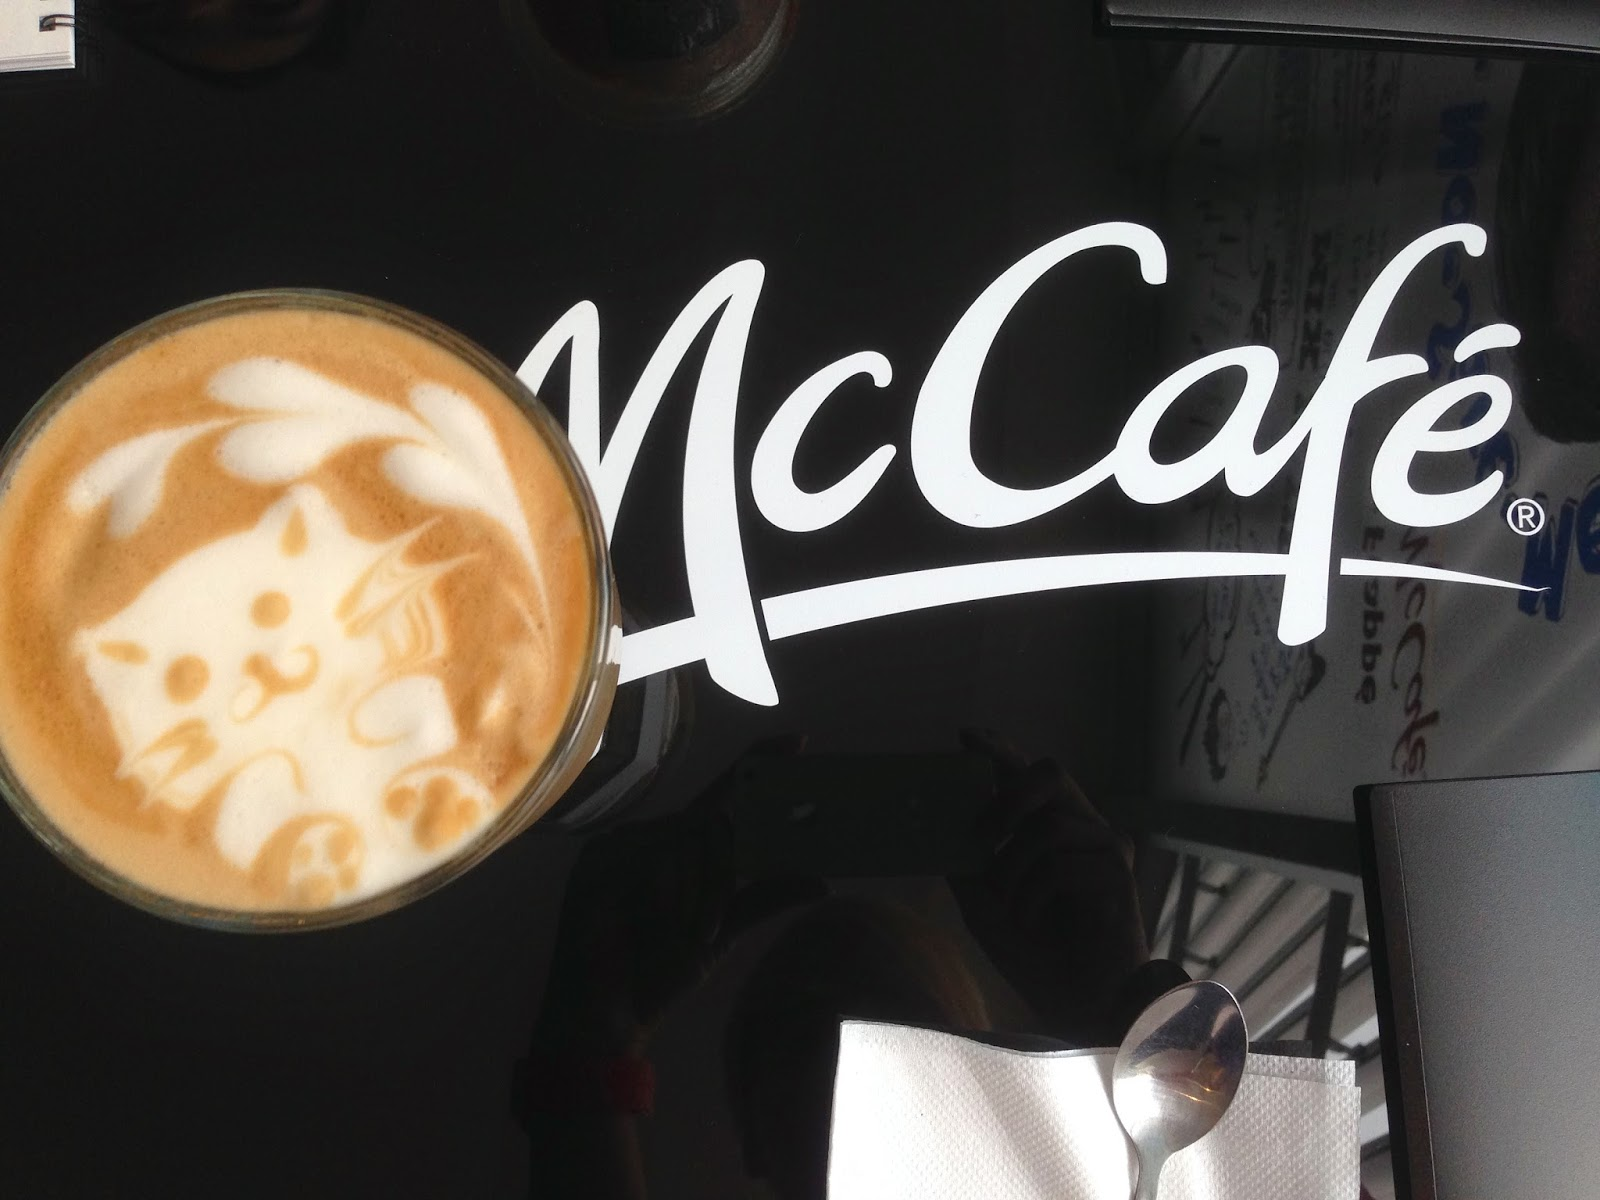 First cup of McCafe Latte